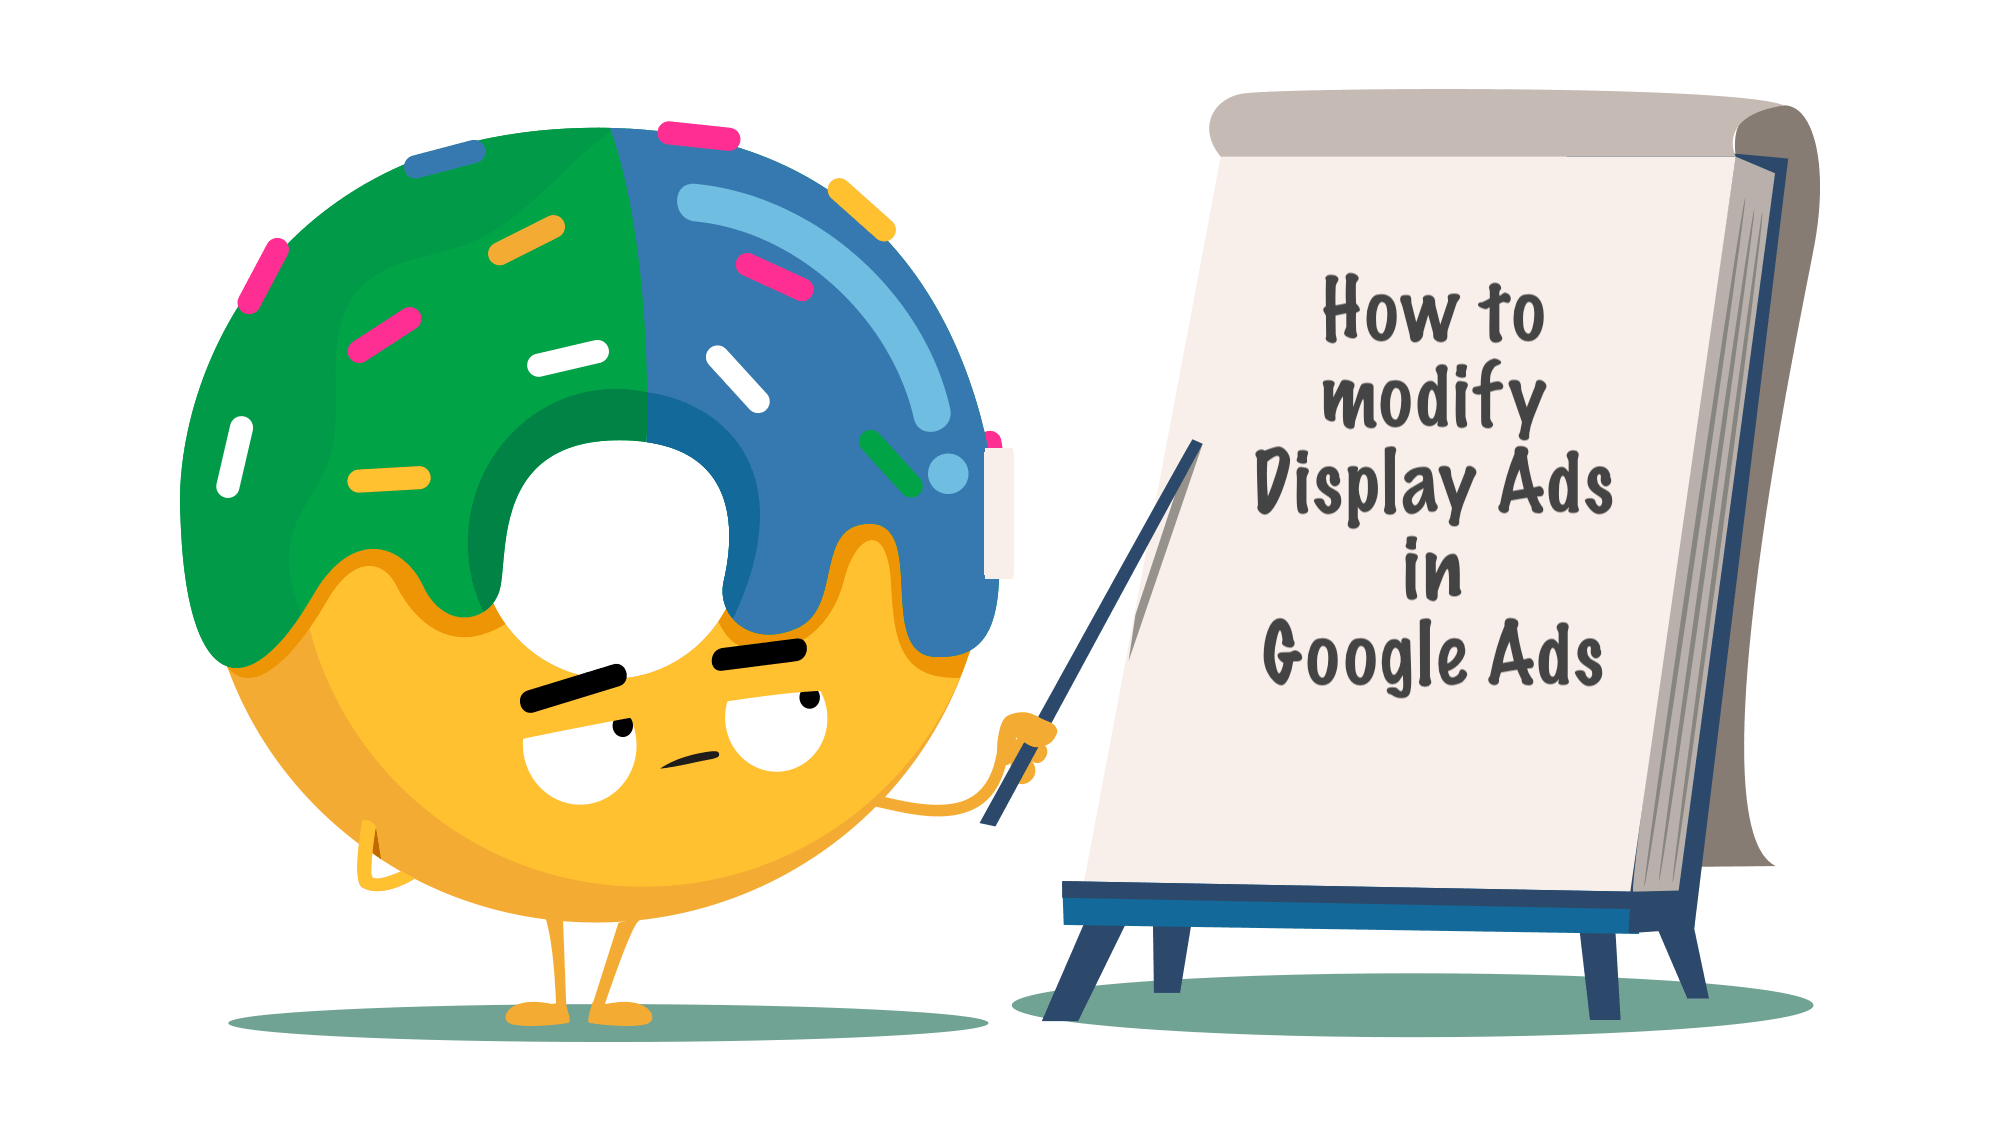 How to add or replace new display ads in Google Ads